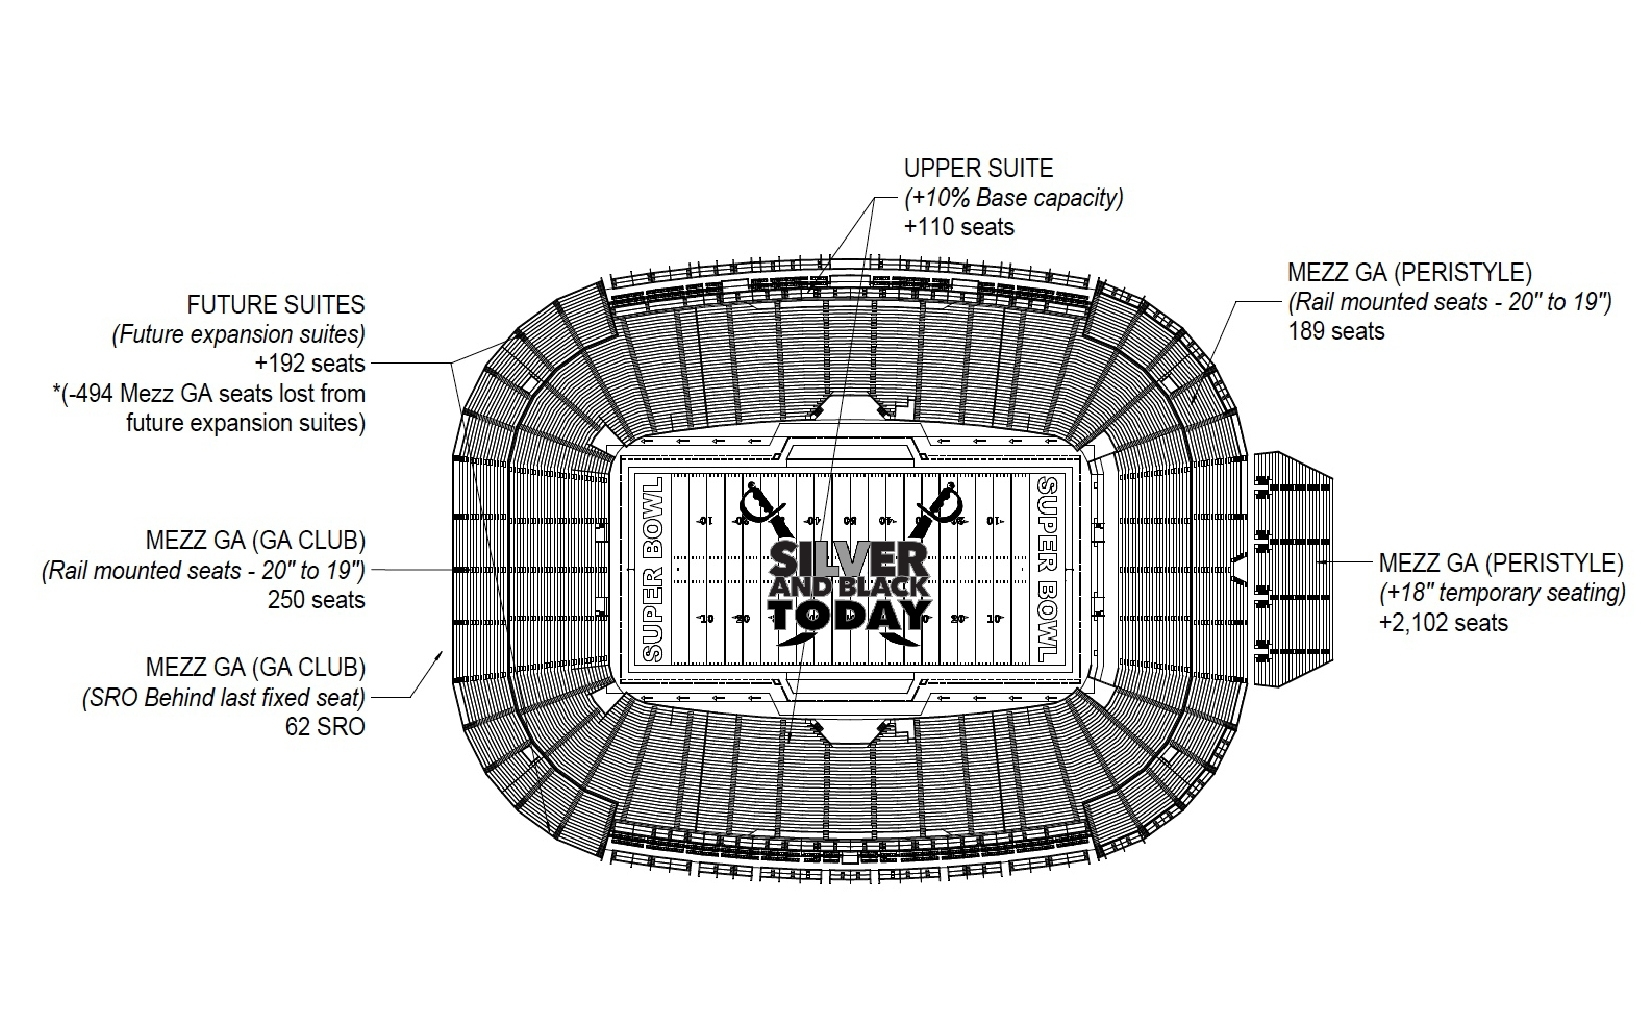 Exclusive: New Stadium Plans Reveal Super Bowl Configuration pertaining to Seating Capacity For Super Bowl